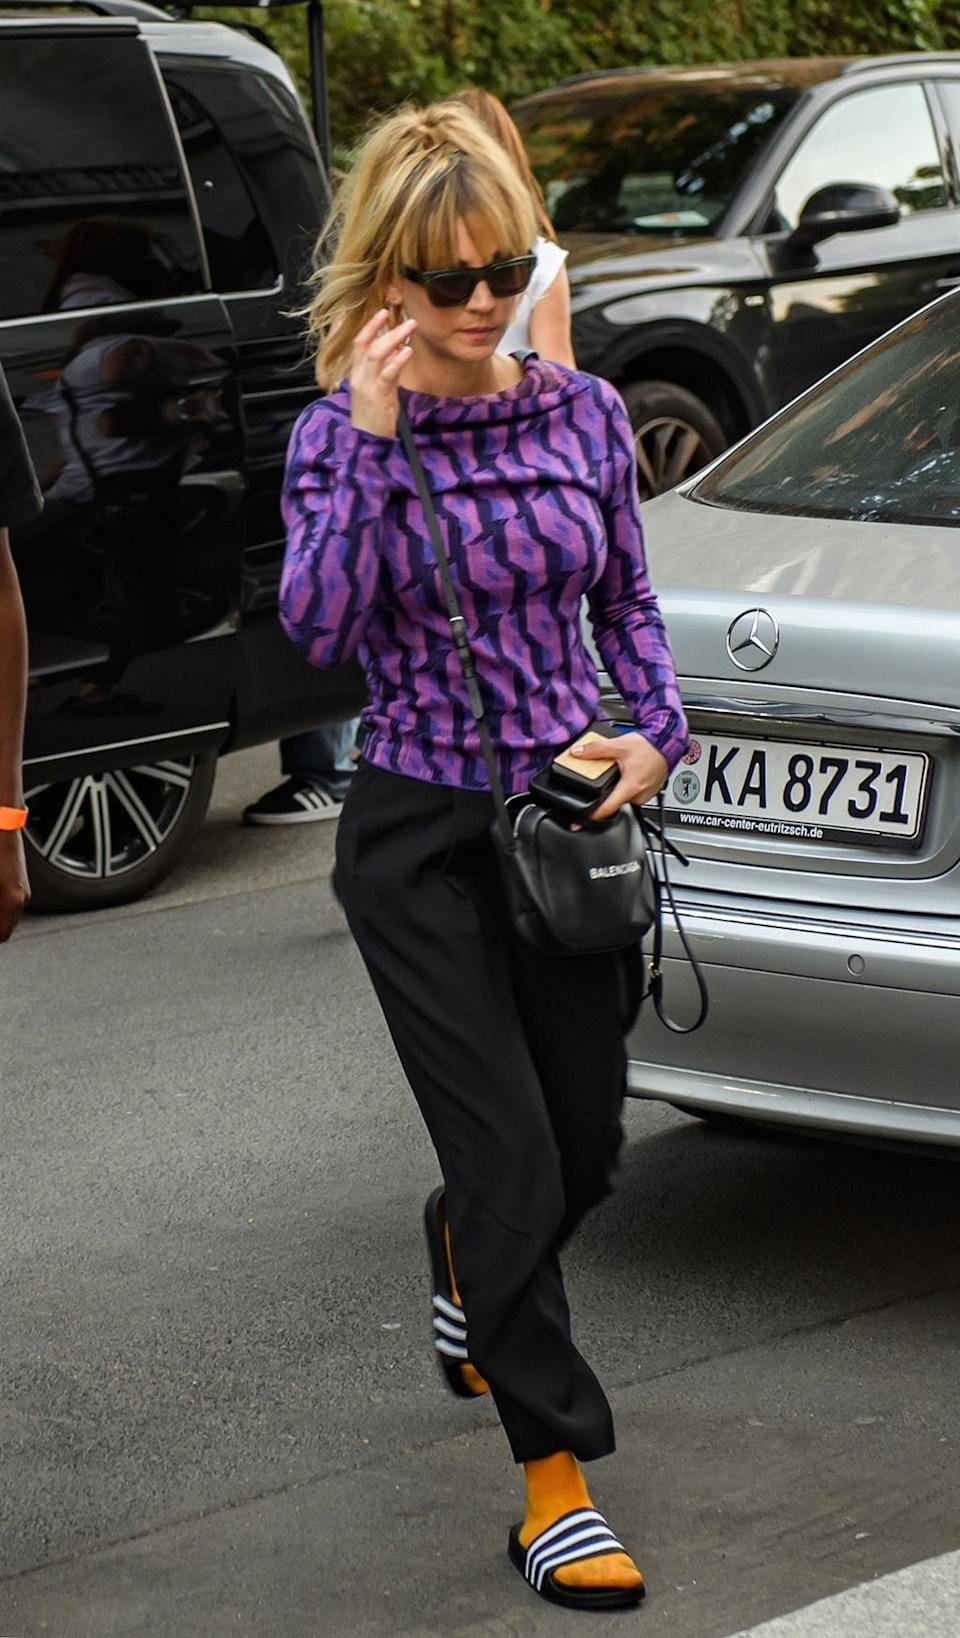 Berlin, GERMANY  - *EXCLUSIVE*  - Actress Kaley Cuoco looks trendy in a purple patterned top as she is pictured leaving her Hotel in Berlin.  The former The Big Bang Theory actress is currently in the capital of Germany to film The Flight Attendant. In addition, the actress recently announced the separation of her and her husband, Karl Cook, after three years of marriage on Friday.  Pictured: Kaley Cuoco  BACKGRID USA 8 SEPTEMBER 2021   BYLINE MUST READ: HIDEF / BACKGRID  USA: +1 310 798 9111 / usasales@backgrid.com  UK: +44 208 344 2007 / uksales@backgrid.com  *UK Clients - Pictures Containing Children Please Pixelate Face Prior To Publication*